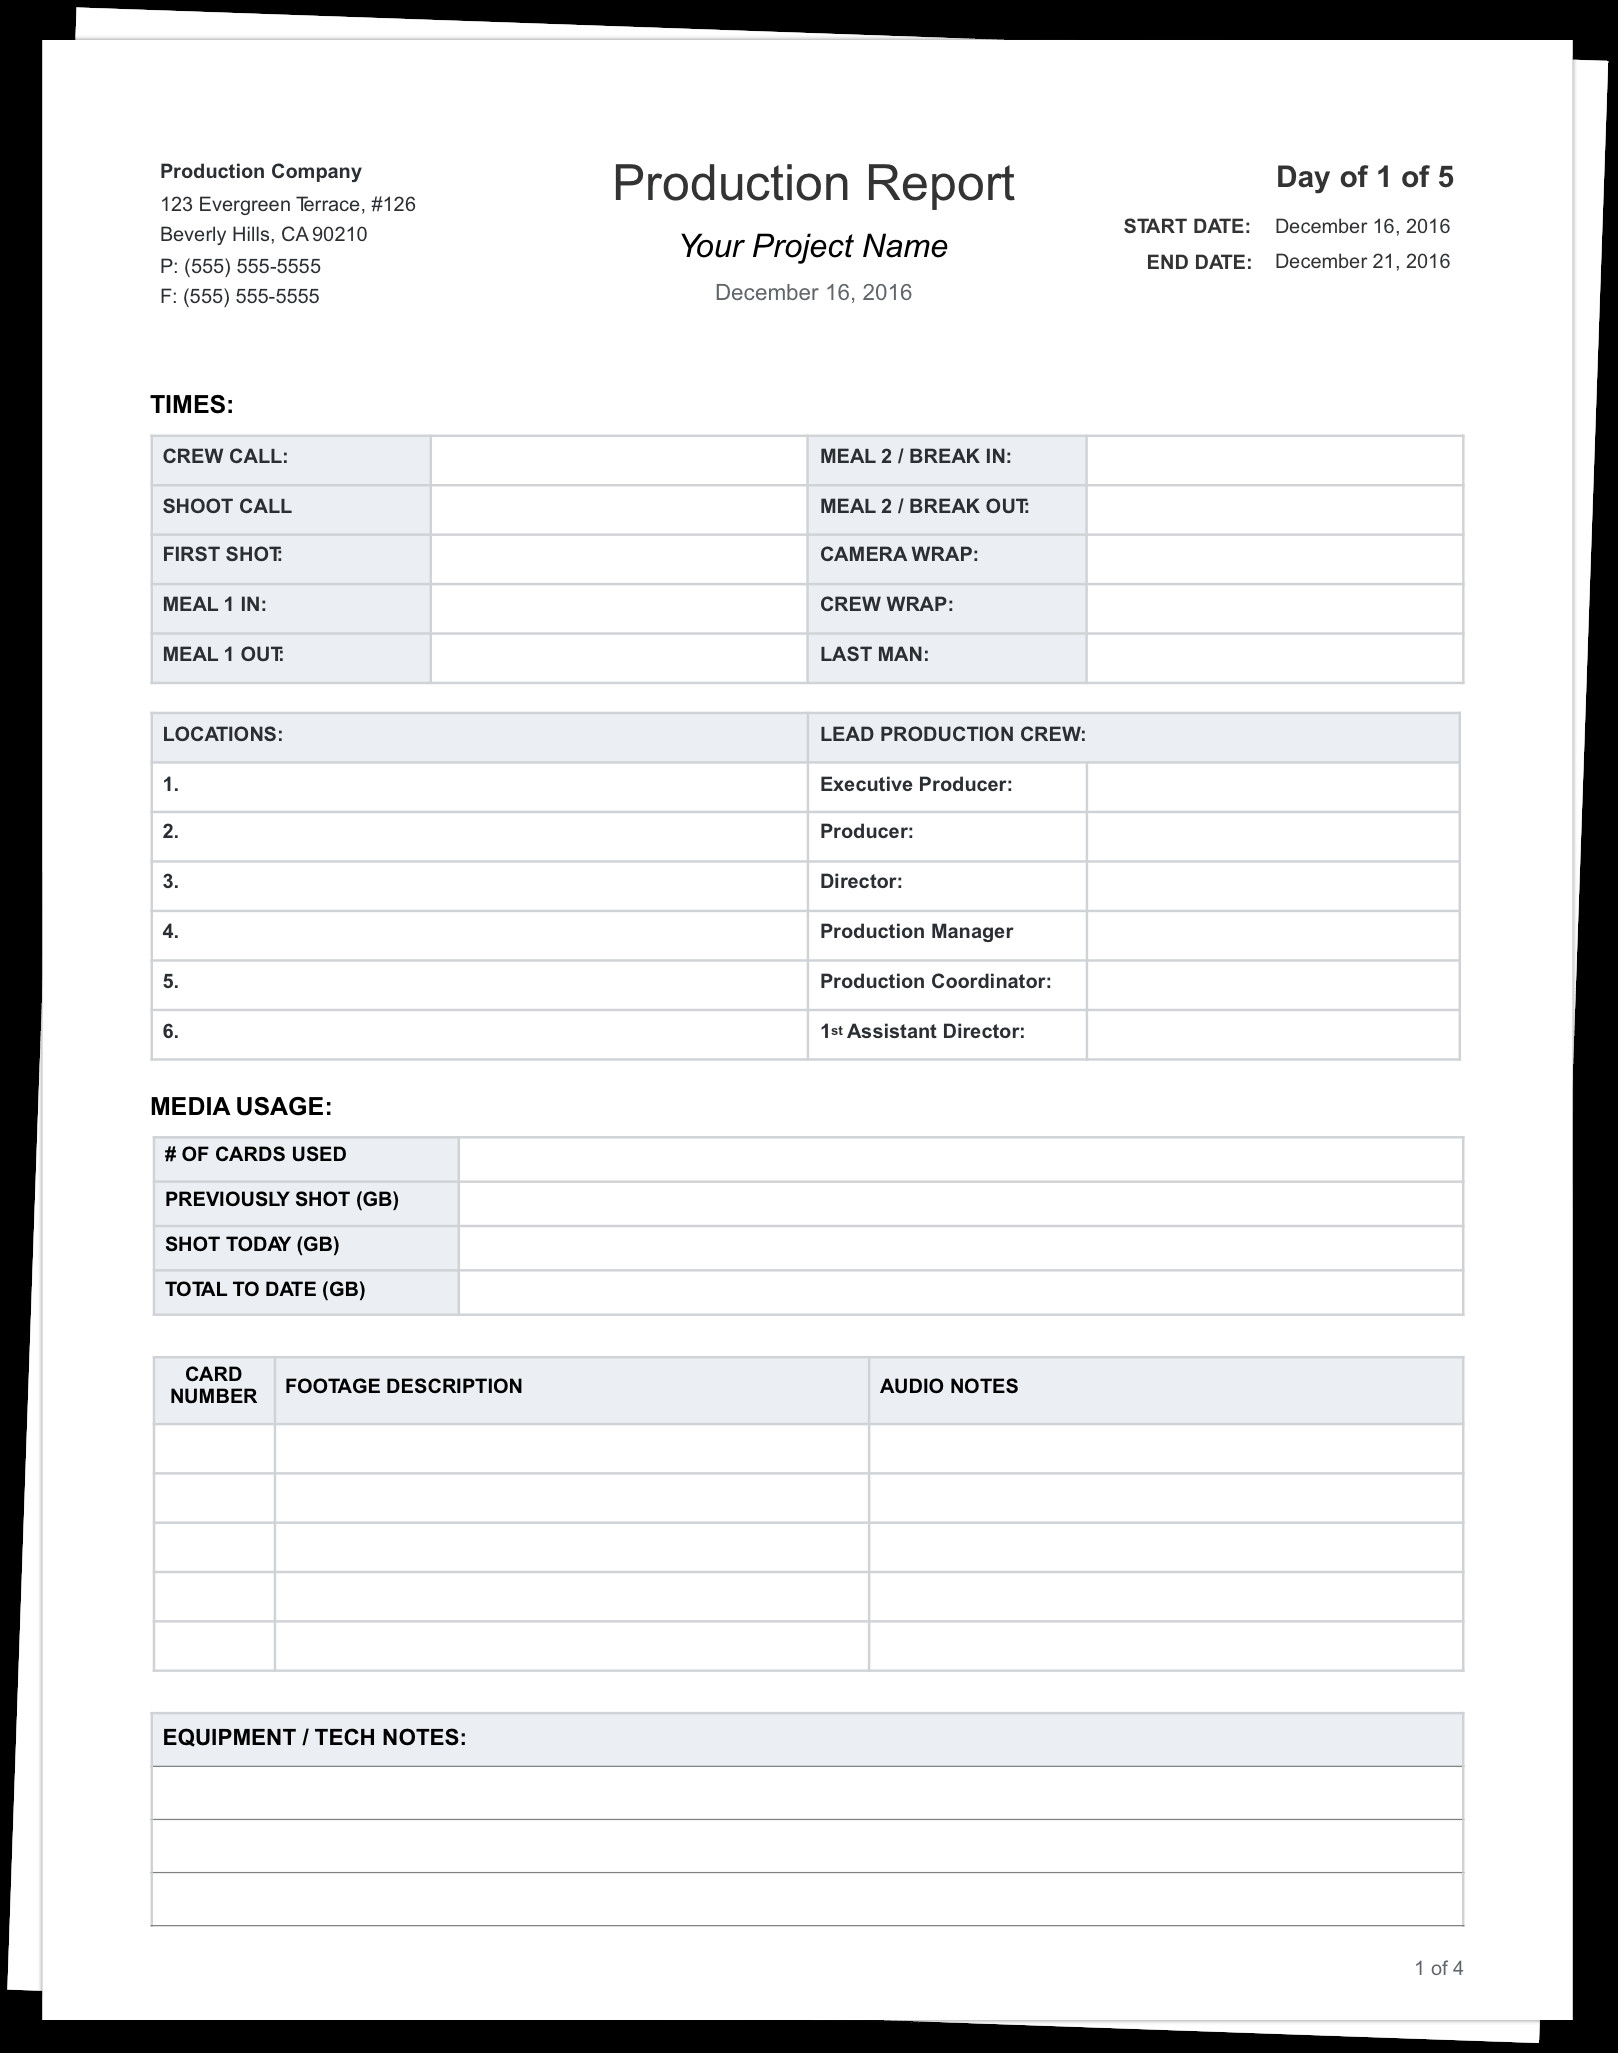 Pass Down Log Template the Daily Production Report Explained with Free Template